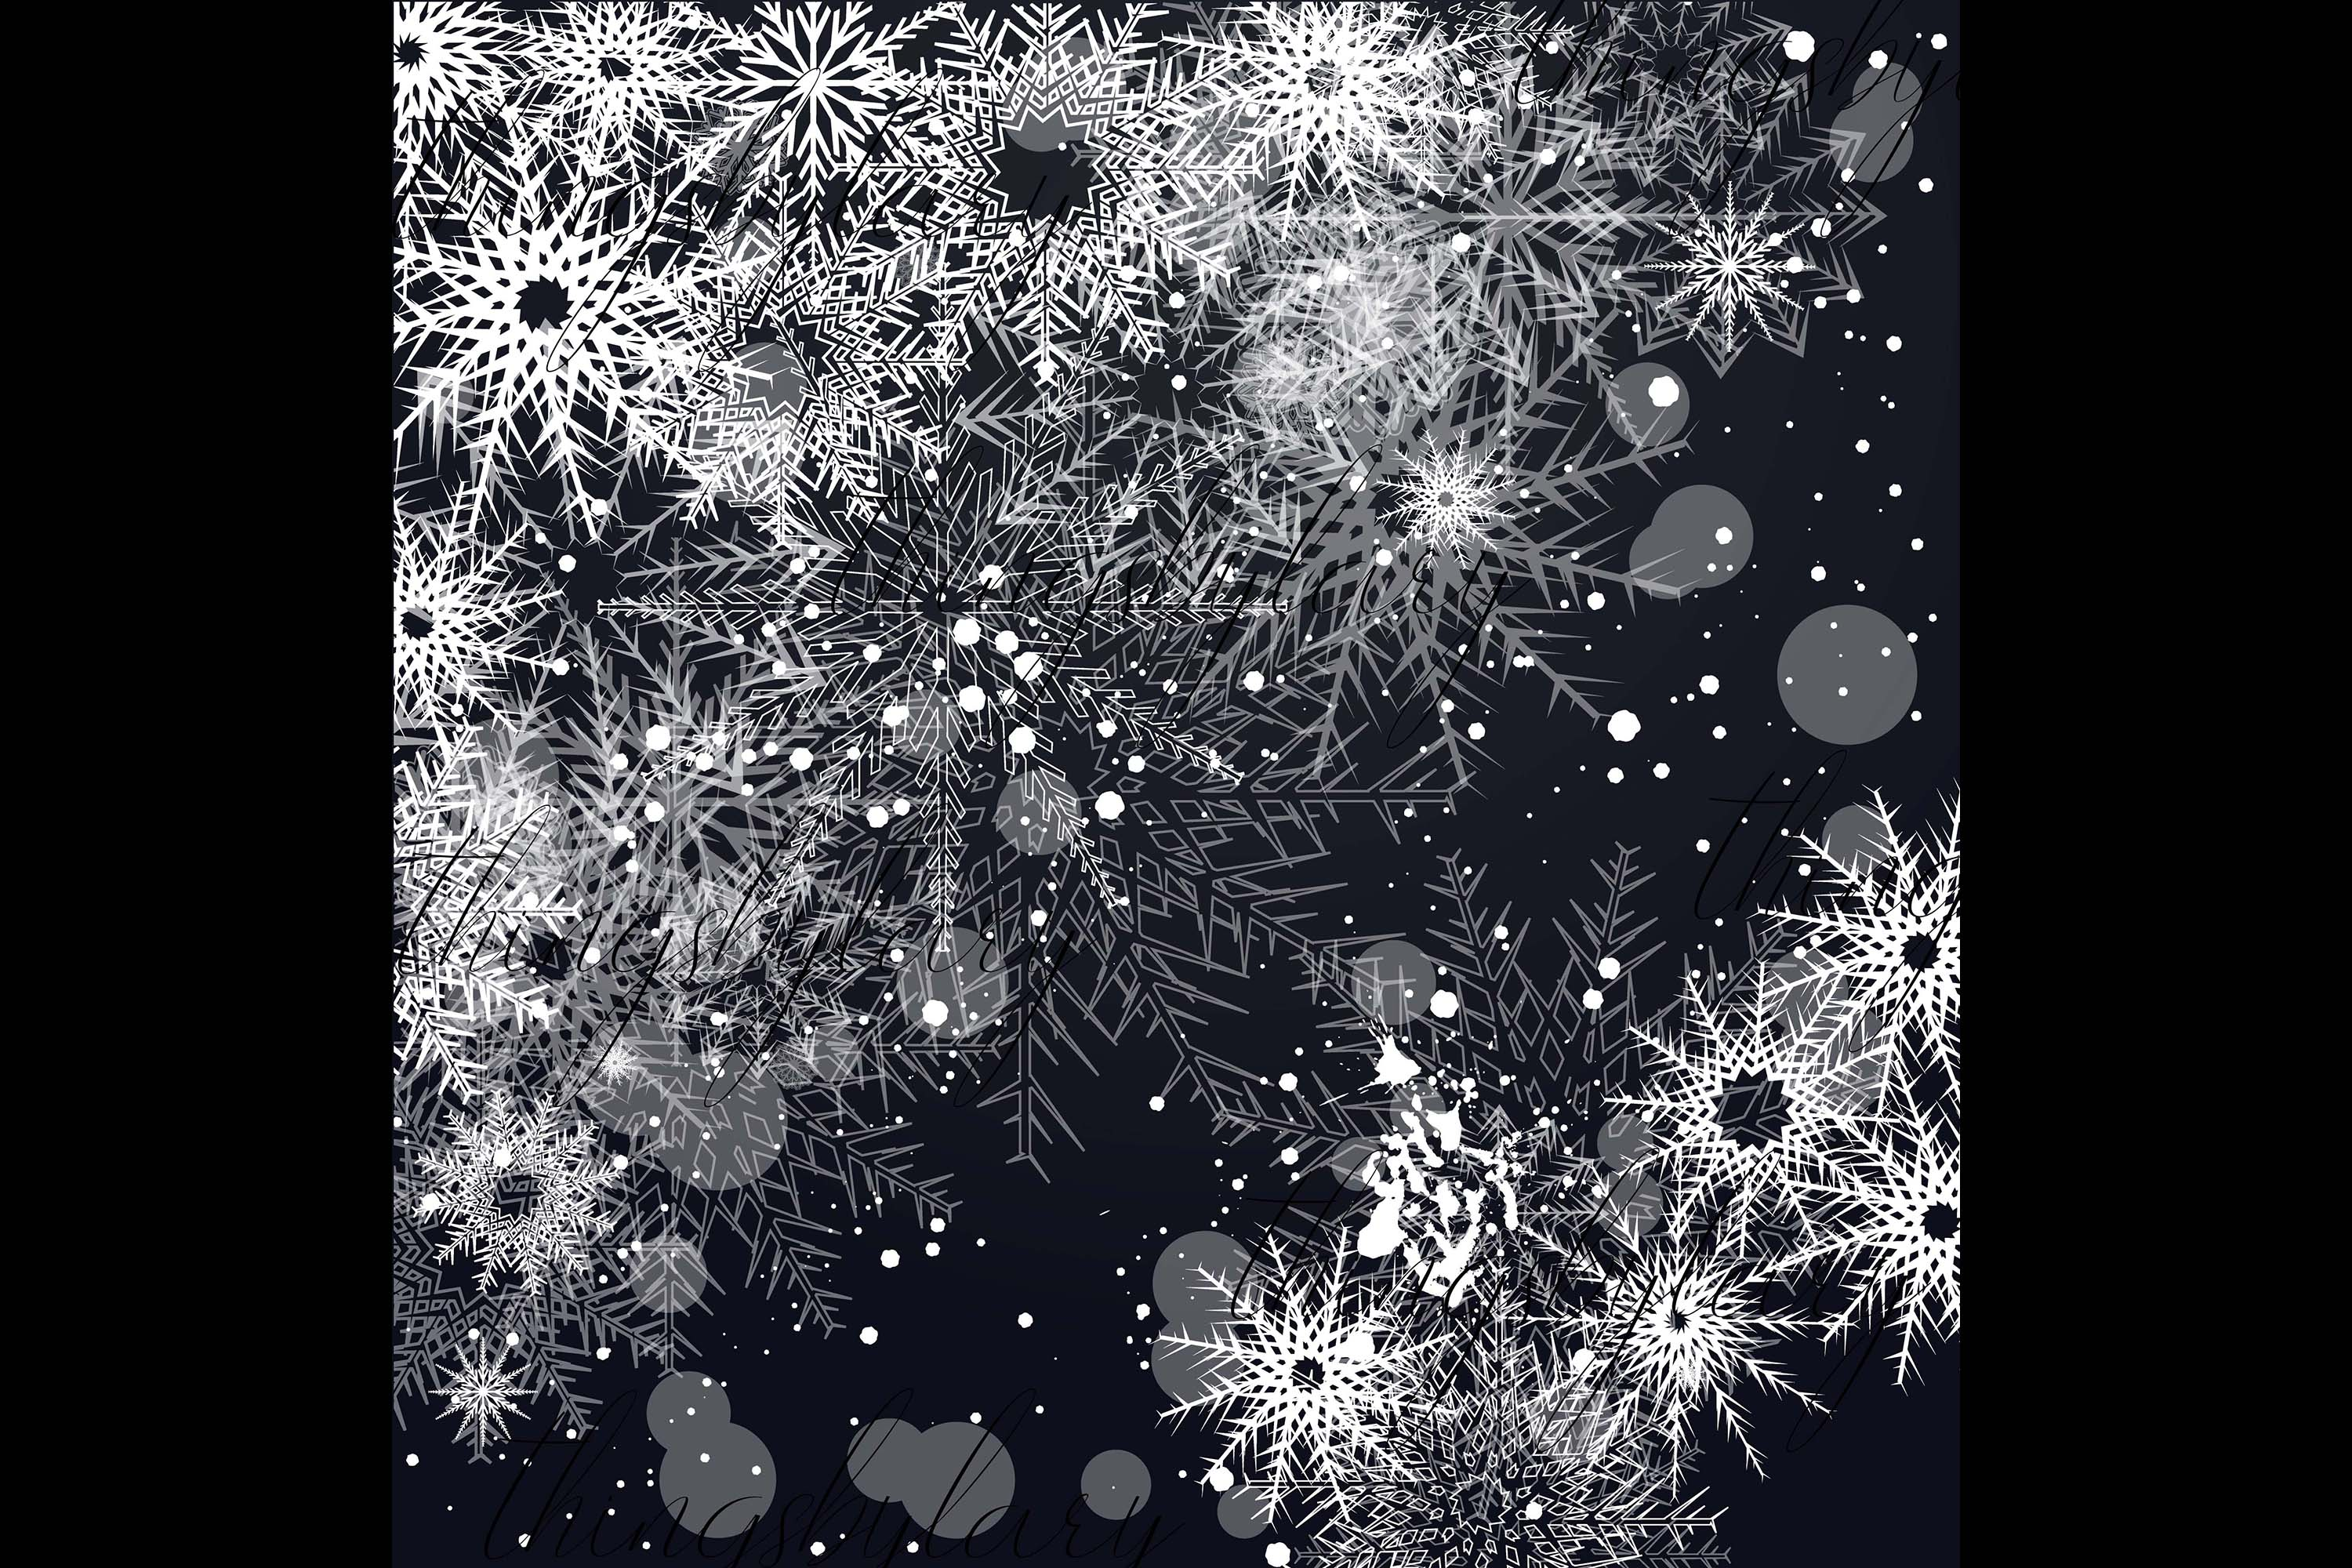 27 Falling Snowflakes Overlay Digital Images PNG Transparent example image 5